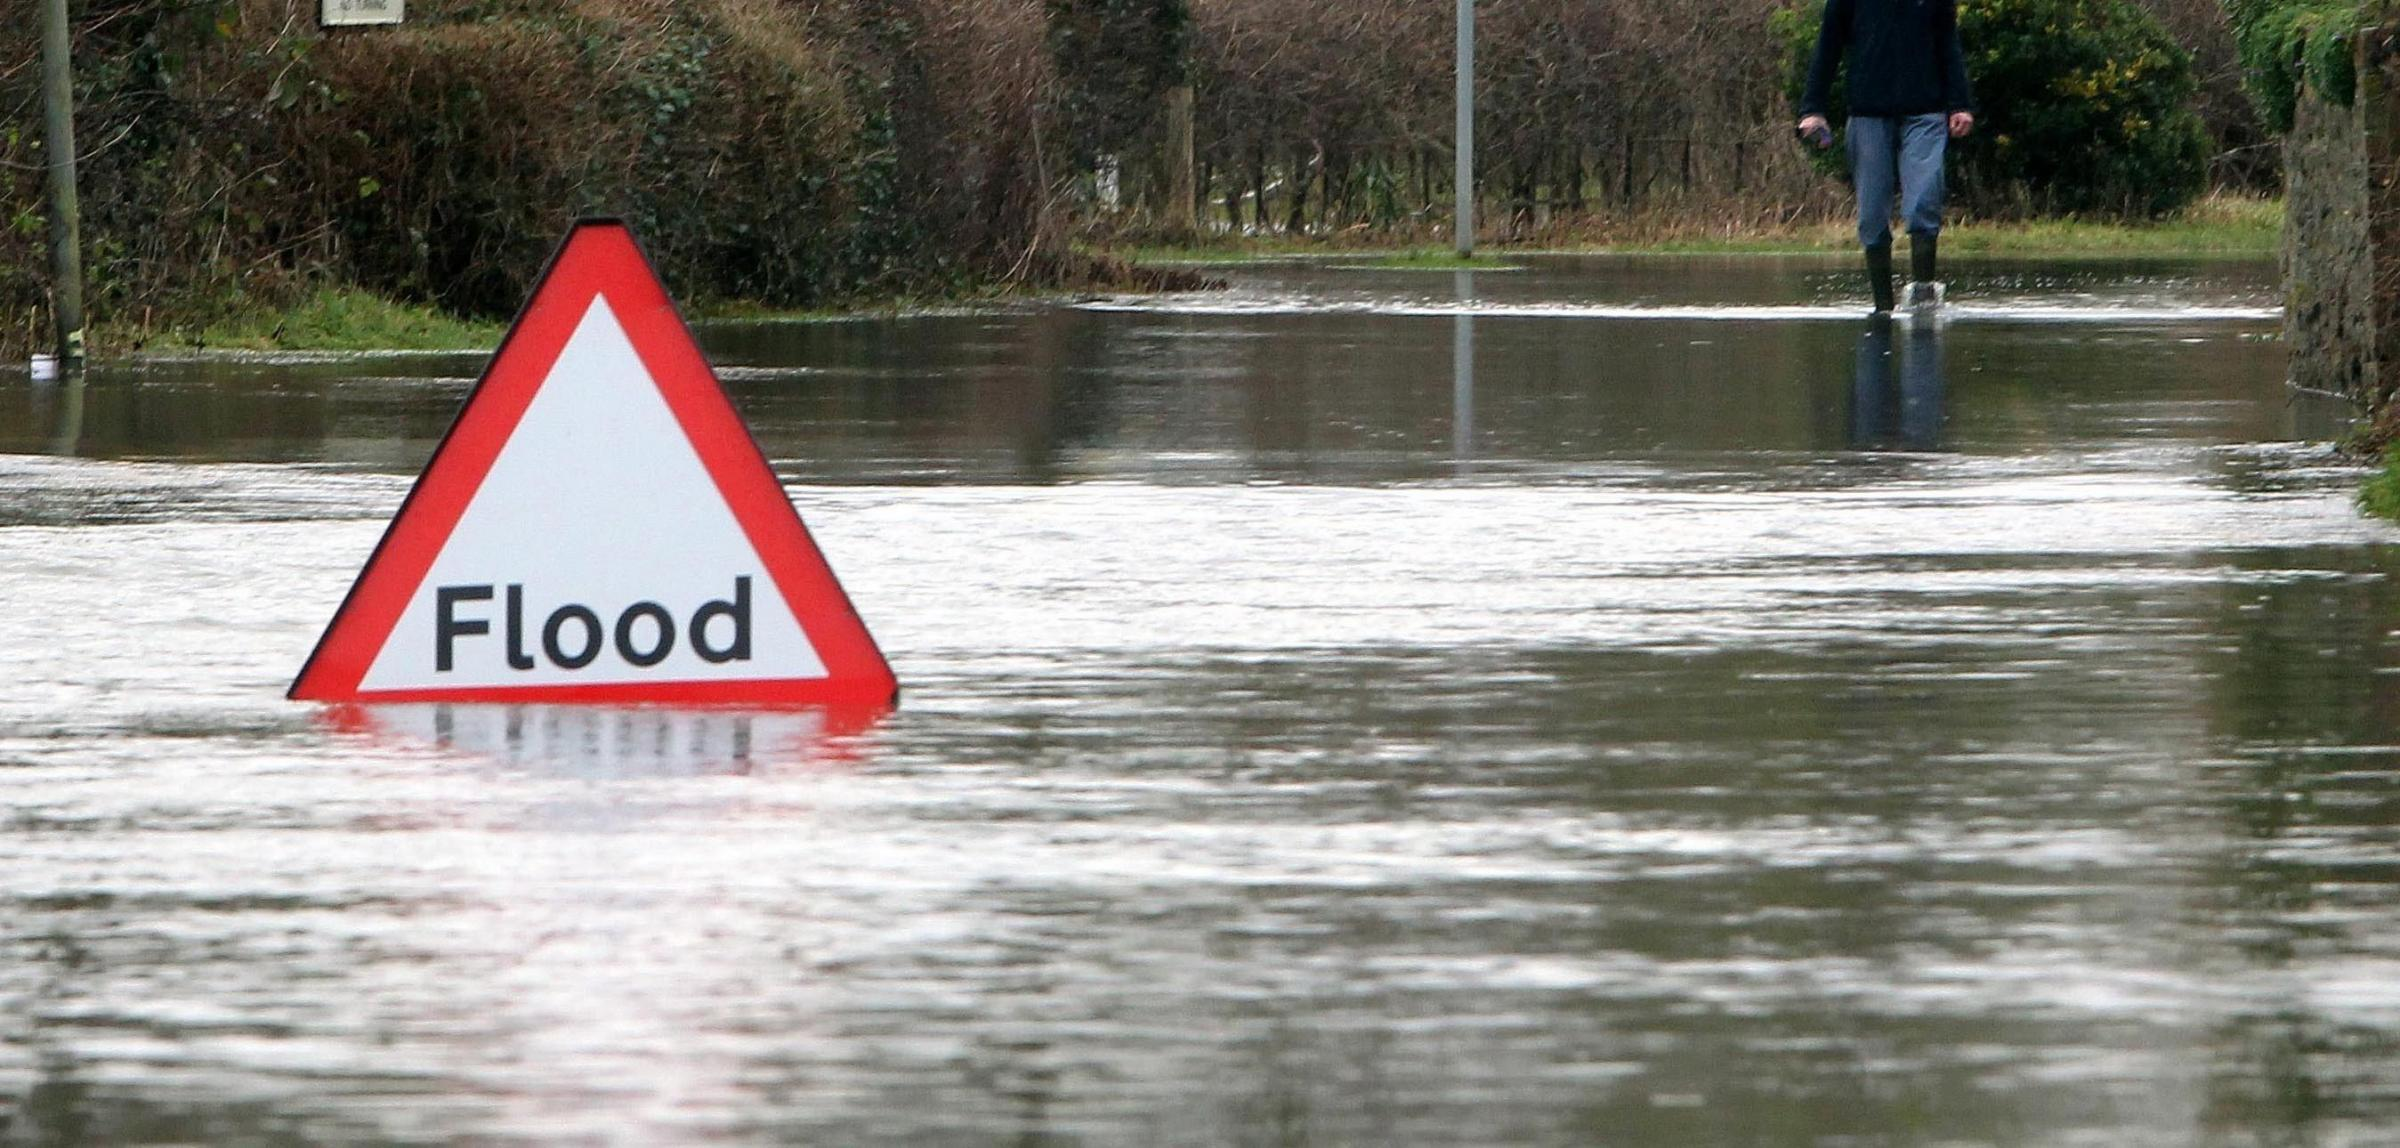 Major flood alert as 70 mile an hour storm to batter Hampshire